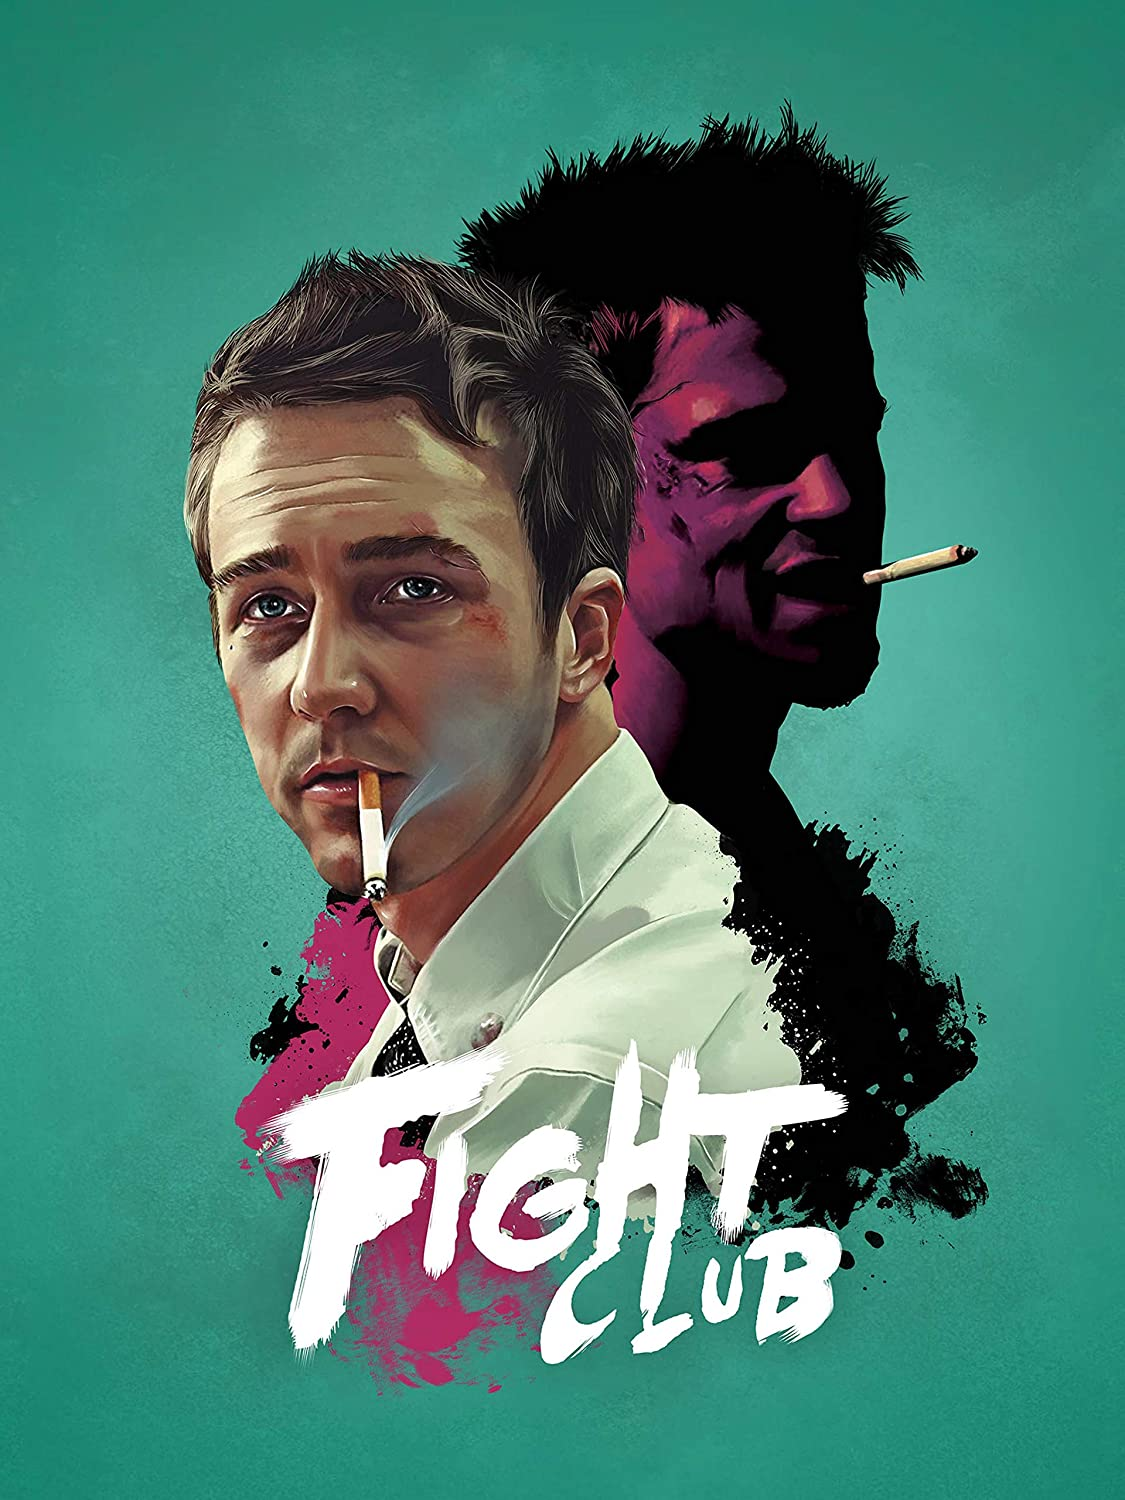 Fight Club Poster Standard Size 18×24 inches